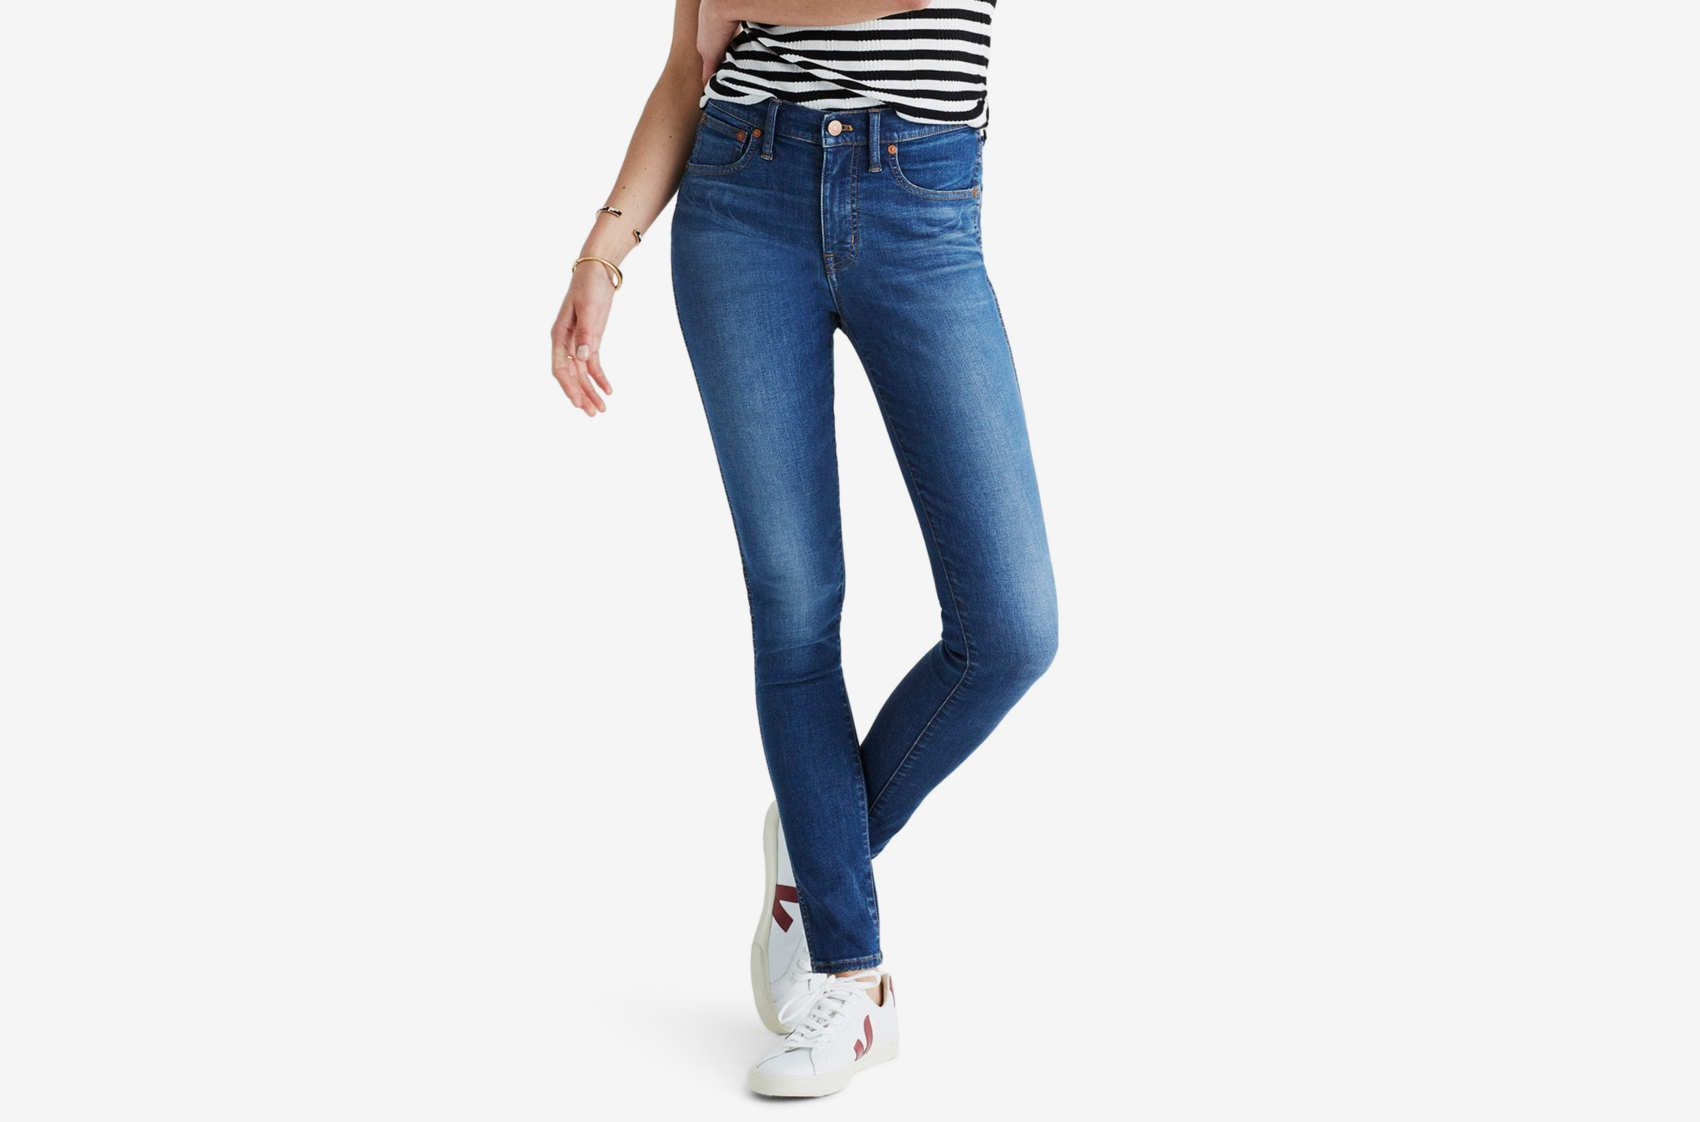 e69bd63a81d The Best High-Waisted Jeans for Sitting